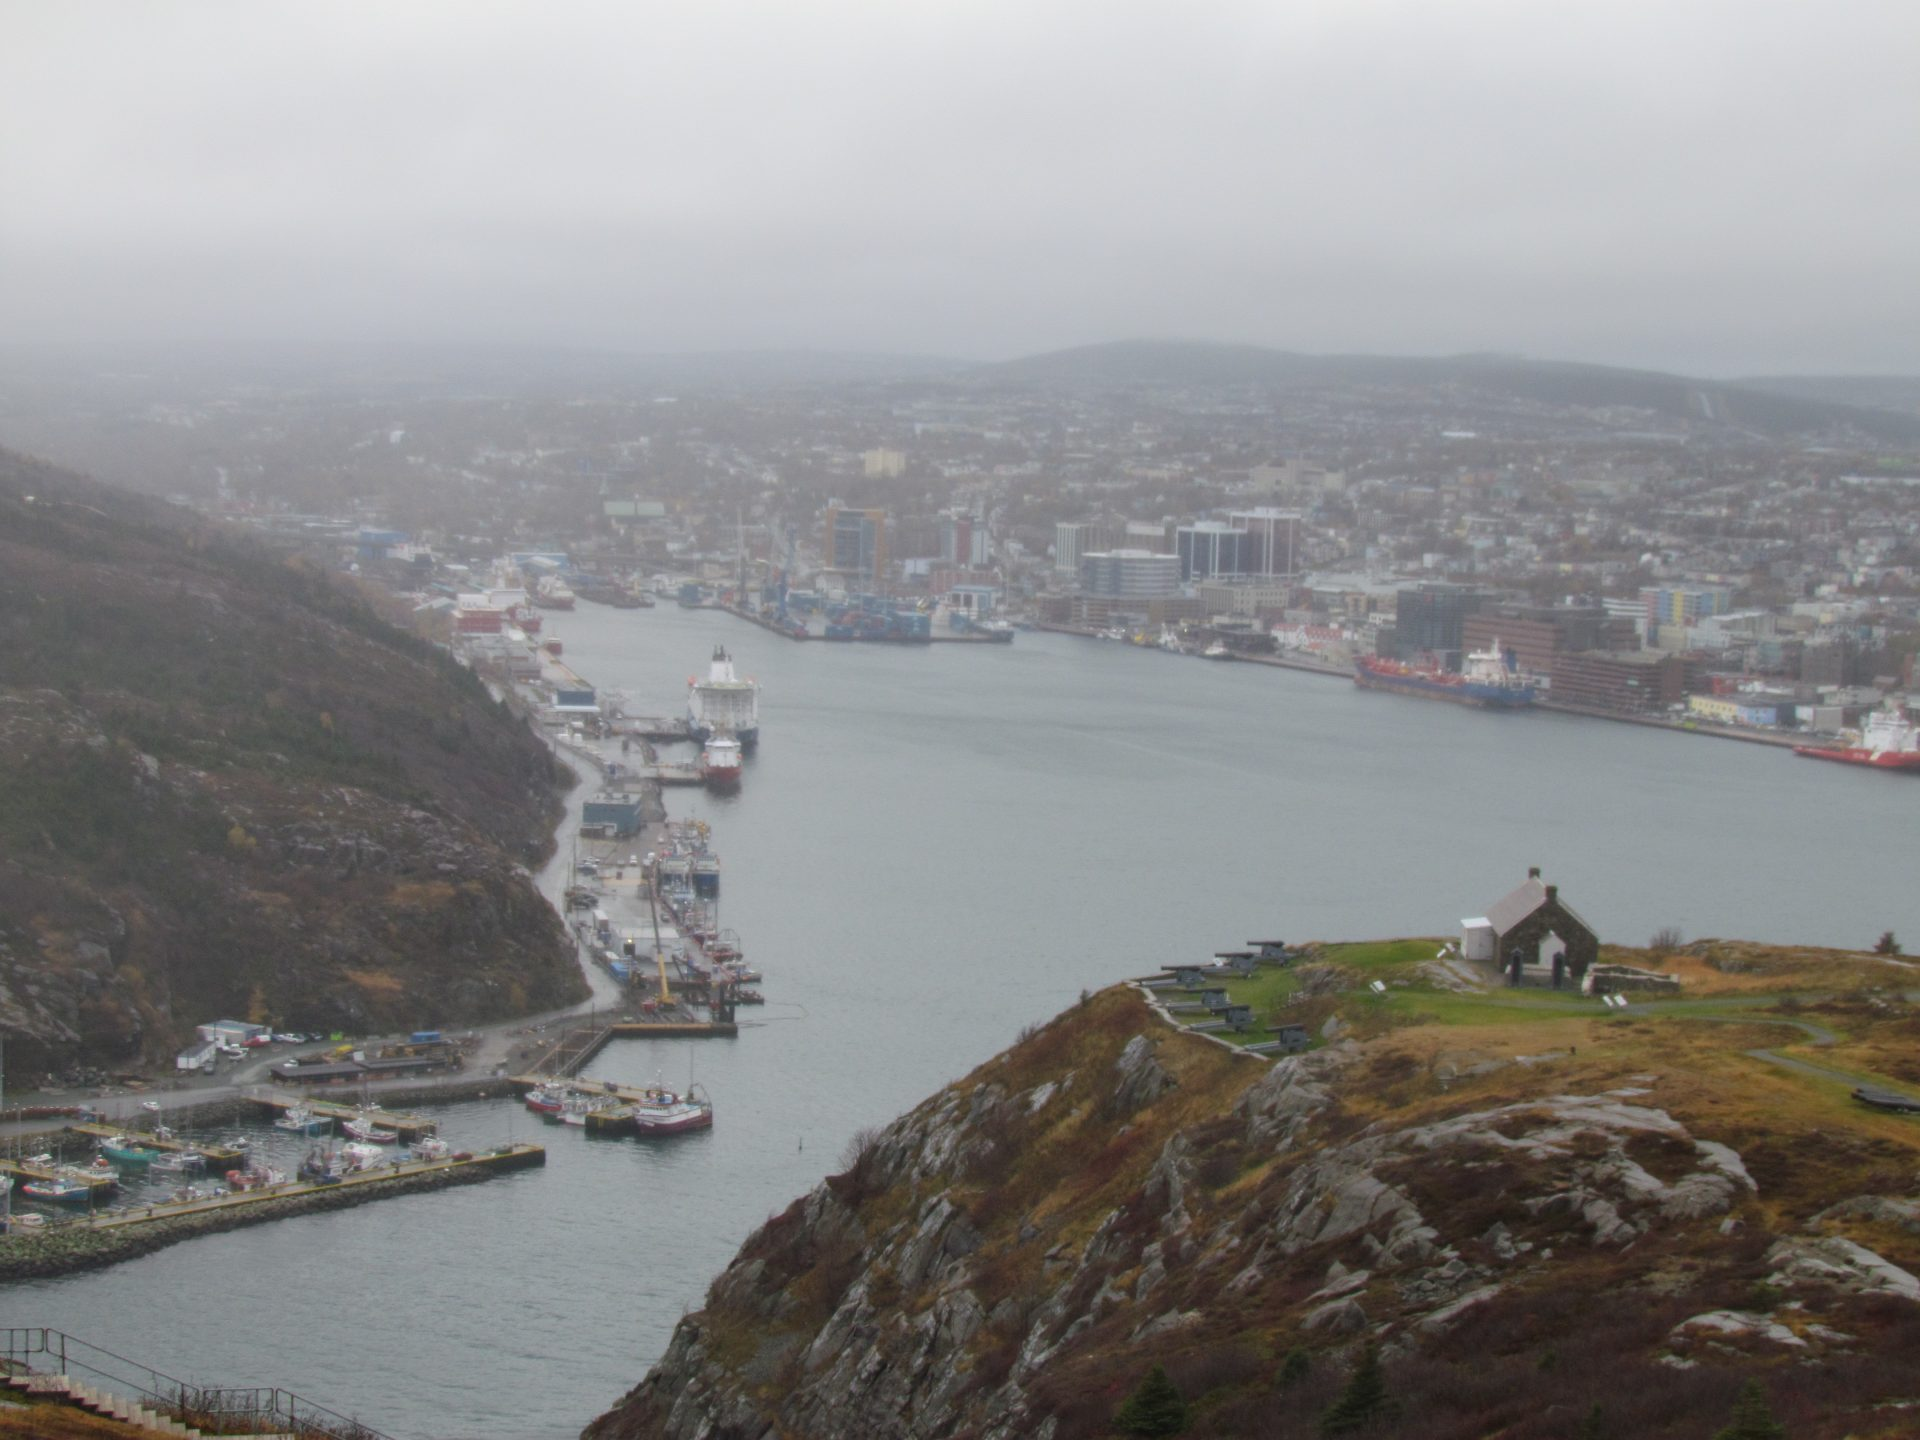 St John's – what an amazing town!